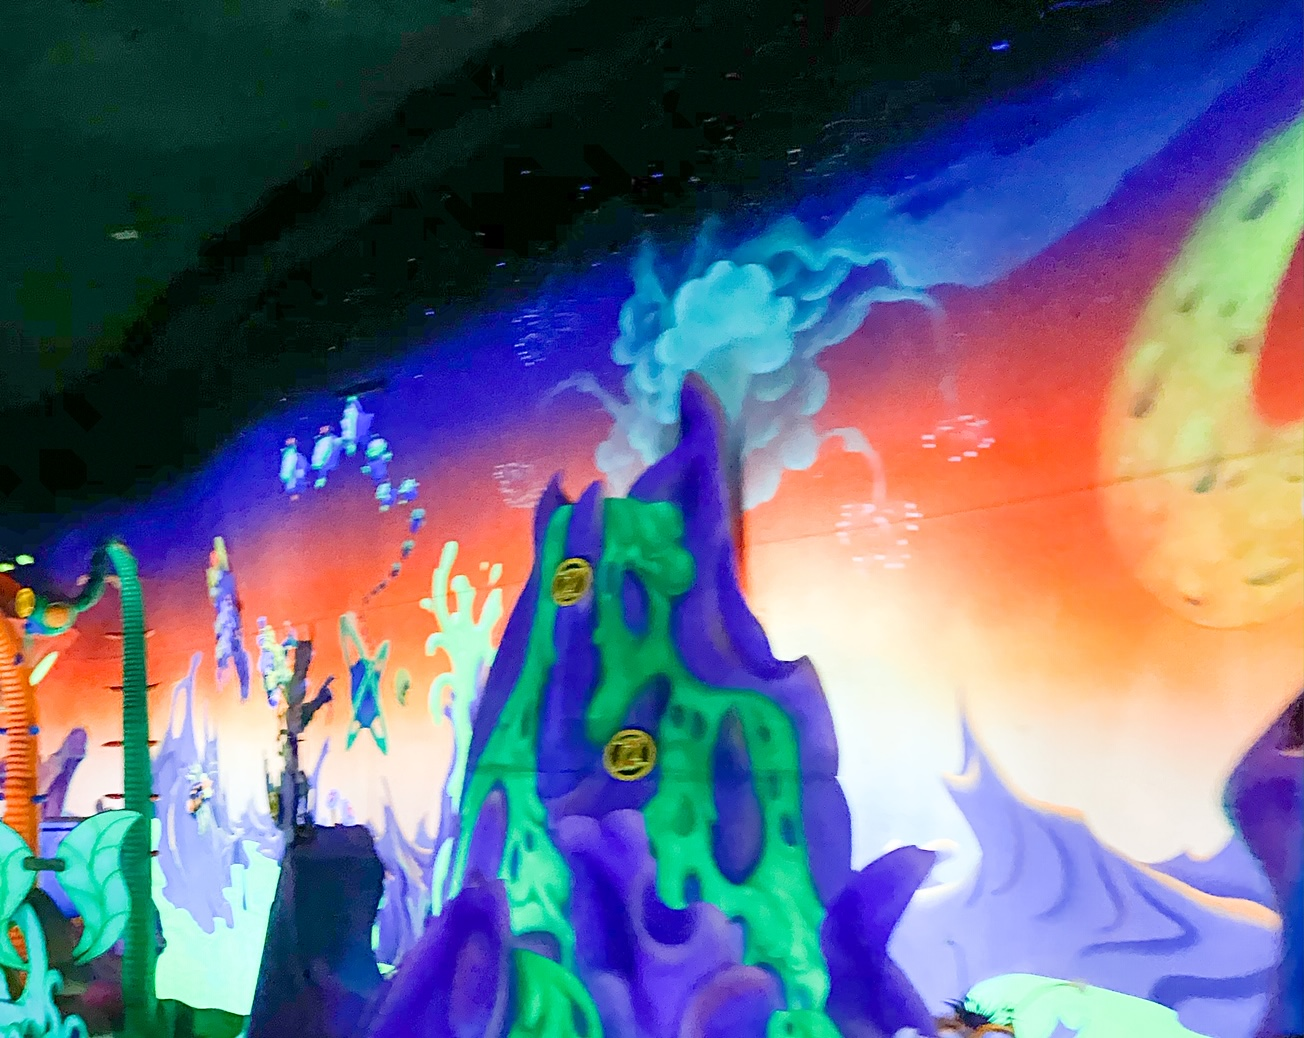 close up view of volcano and scoring on Buzz lightyear ride